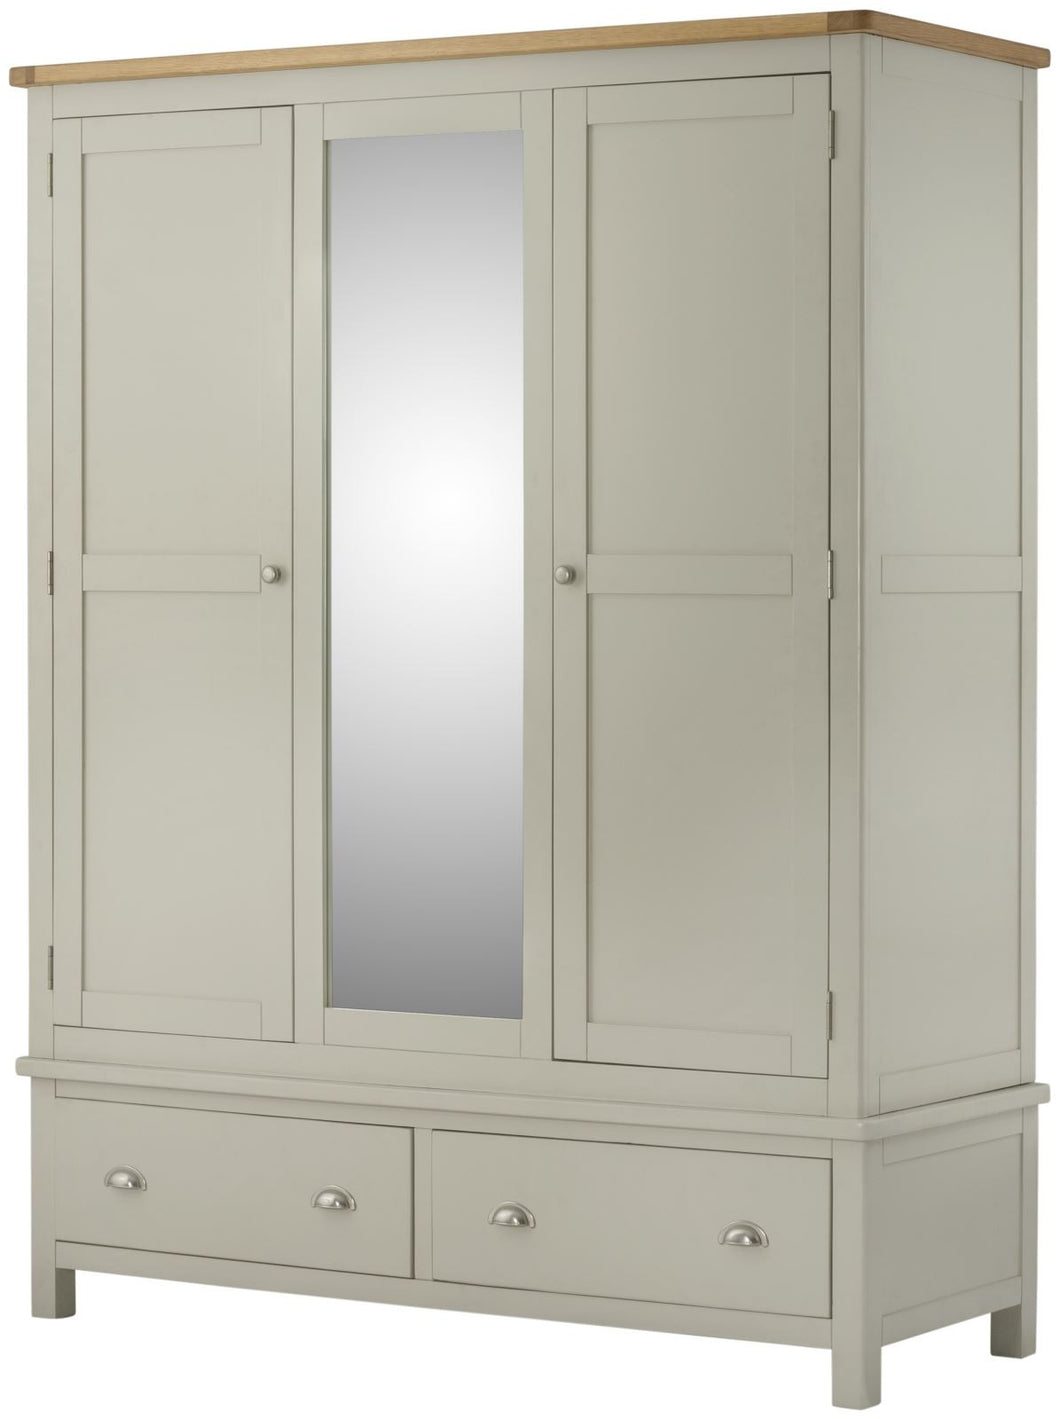 Cottage Triple Wardrobe Stone - Tylers Department Store